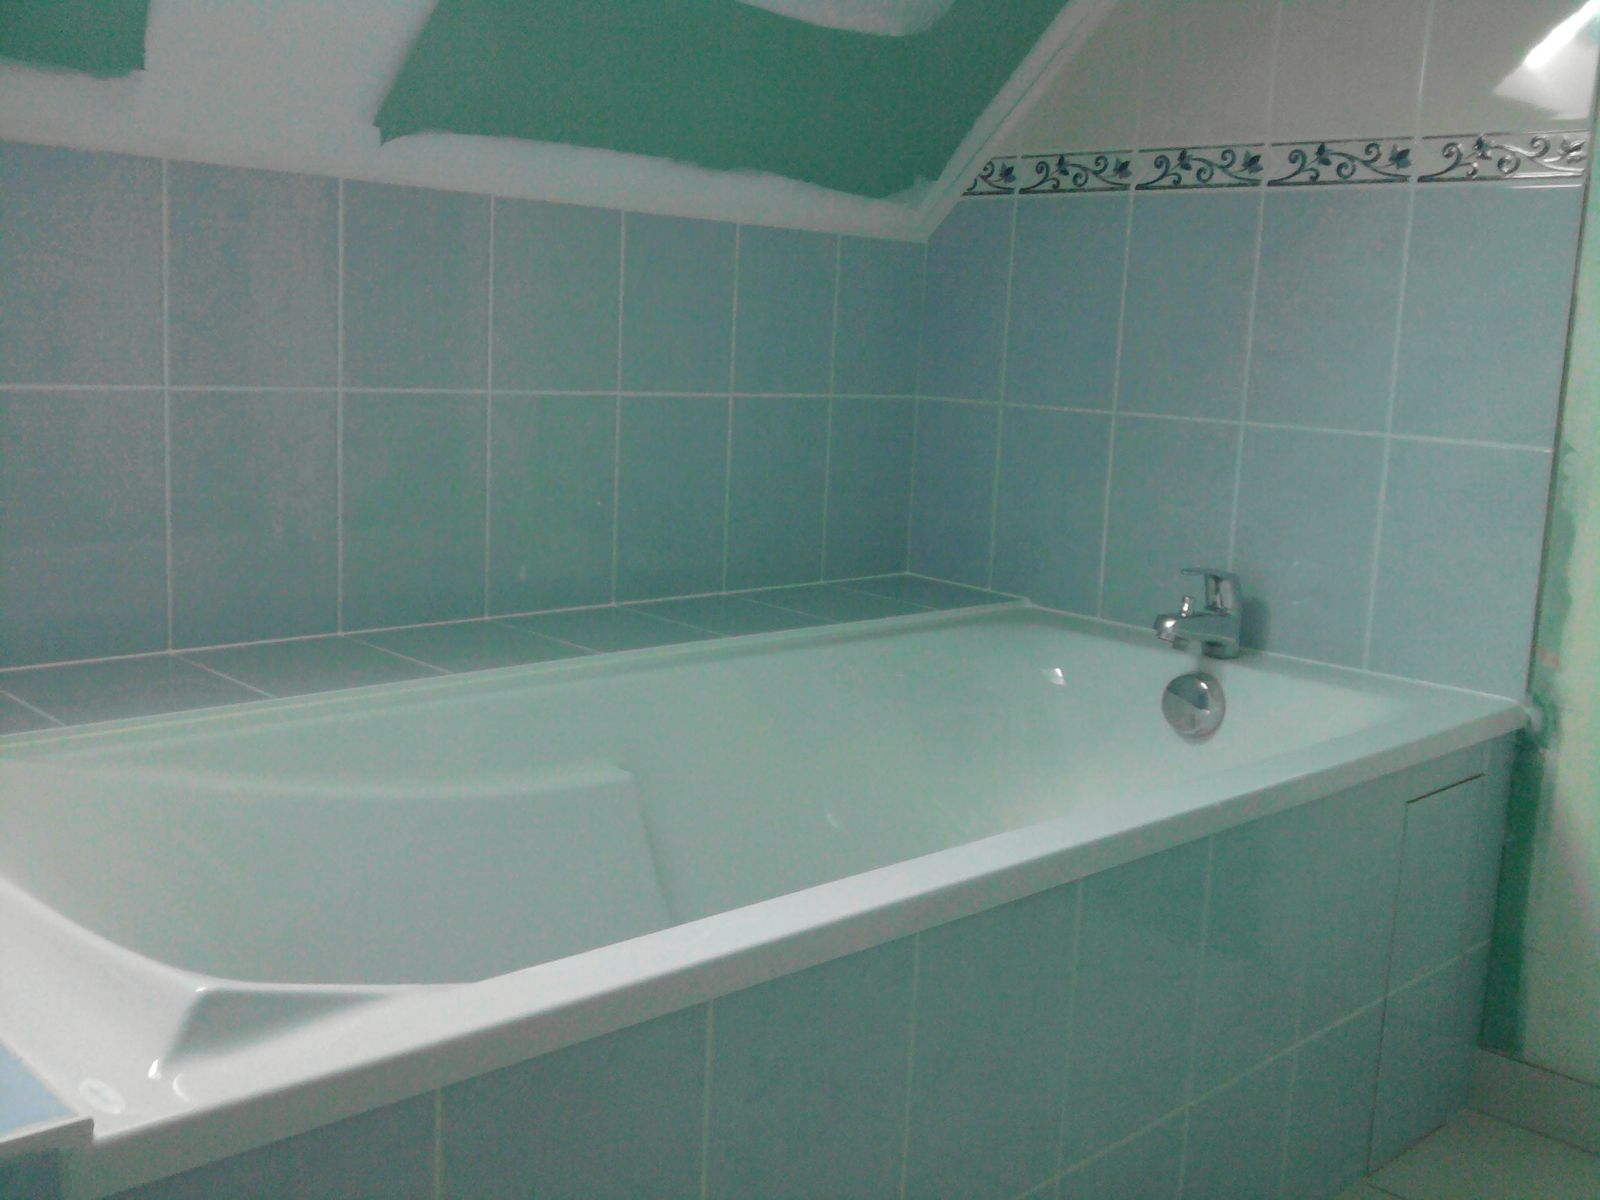 Pose de faience dans une douche maison design for Pose faience douche